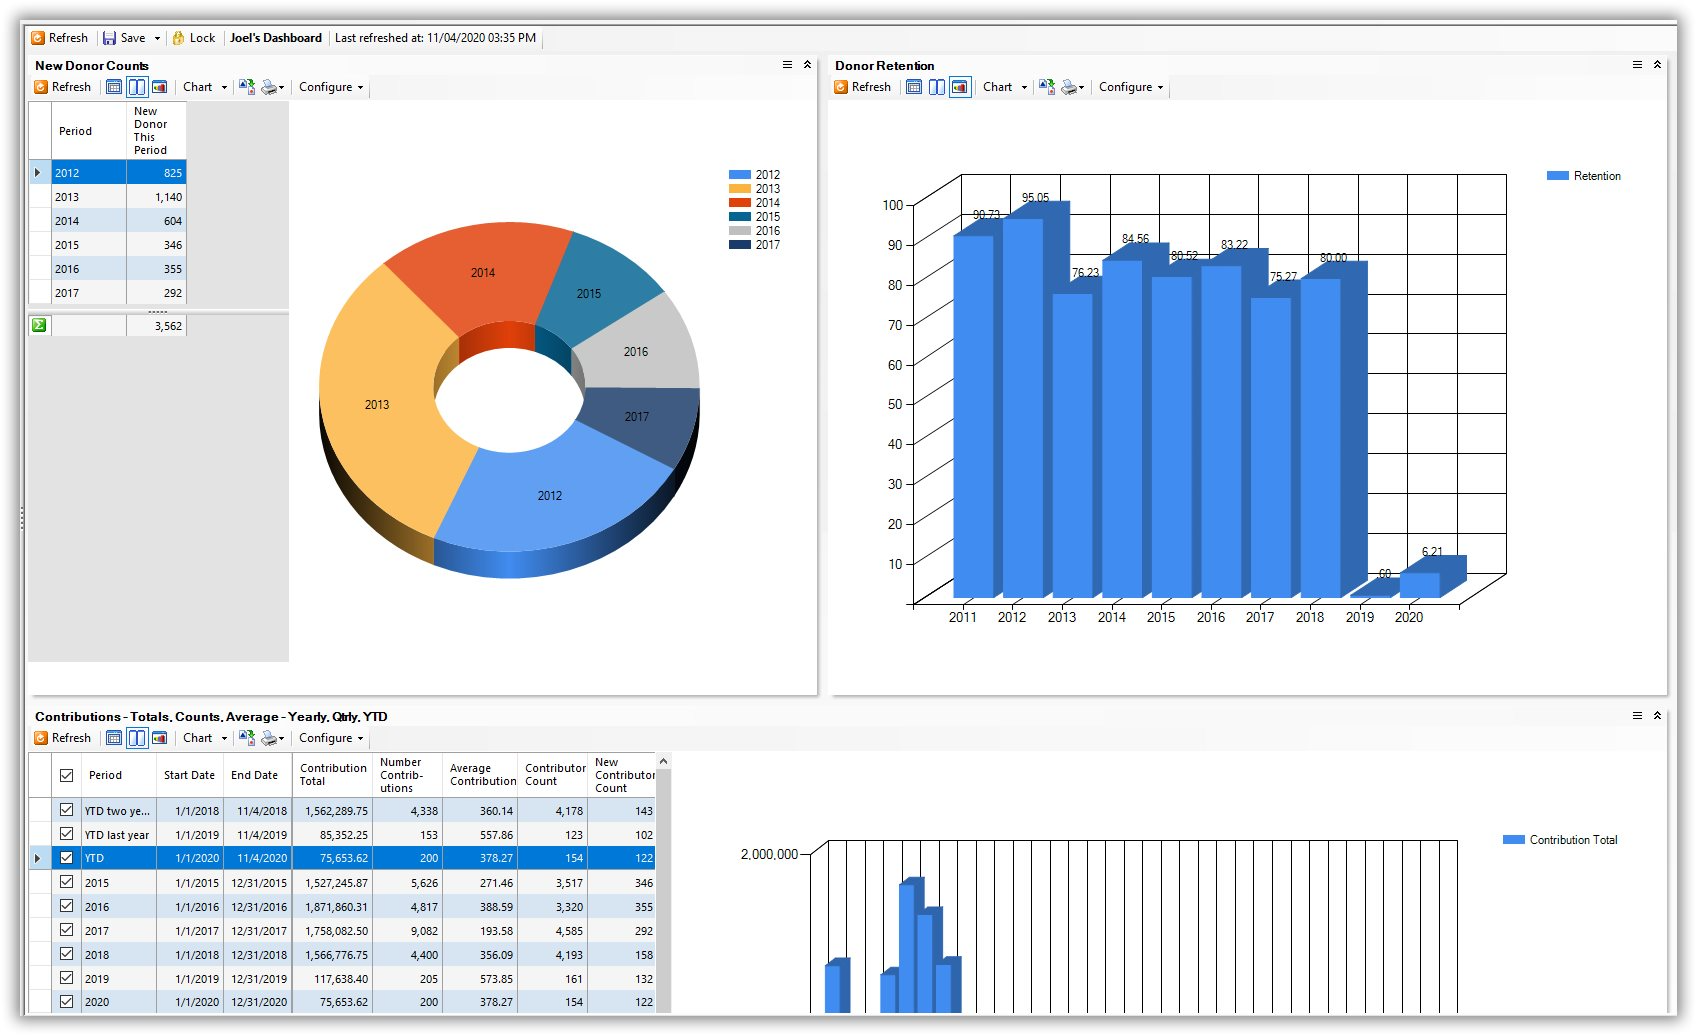 Trail Blazer CRM - Dashboard Reports